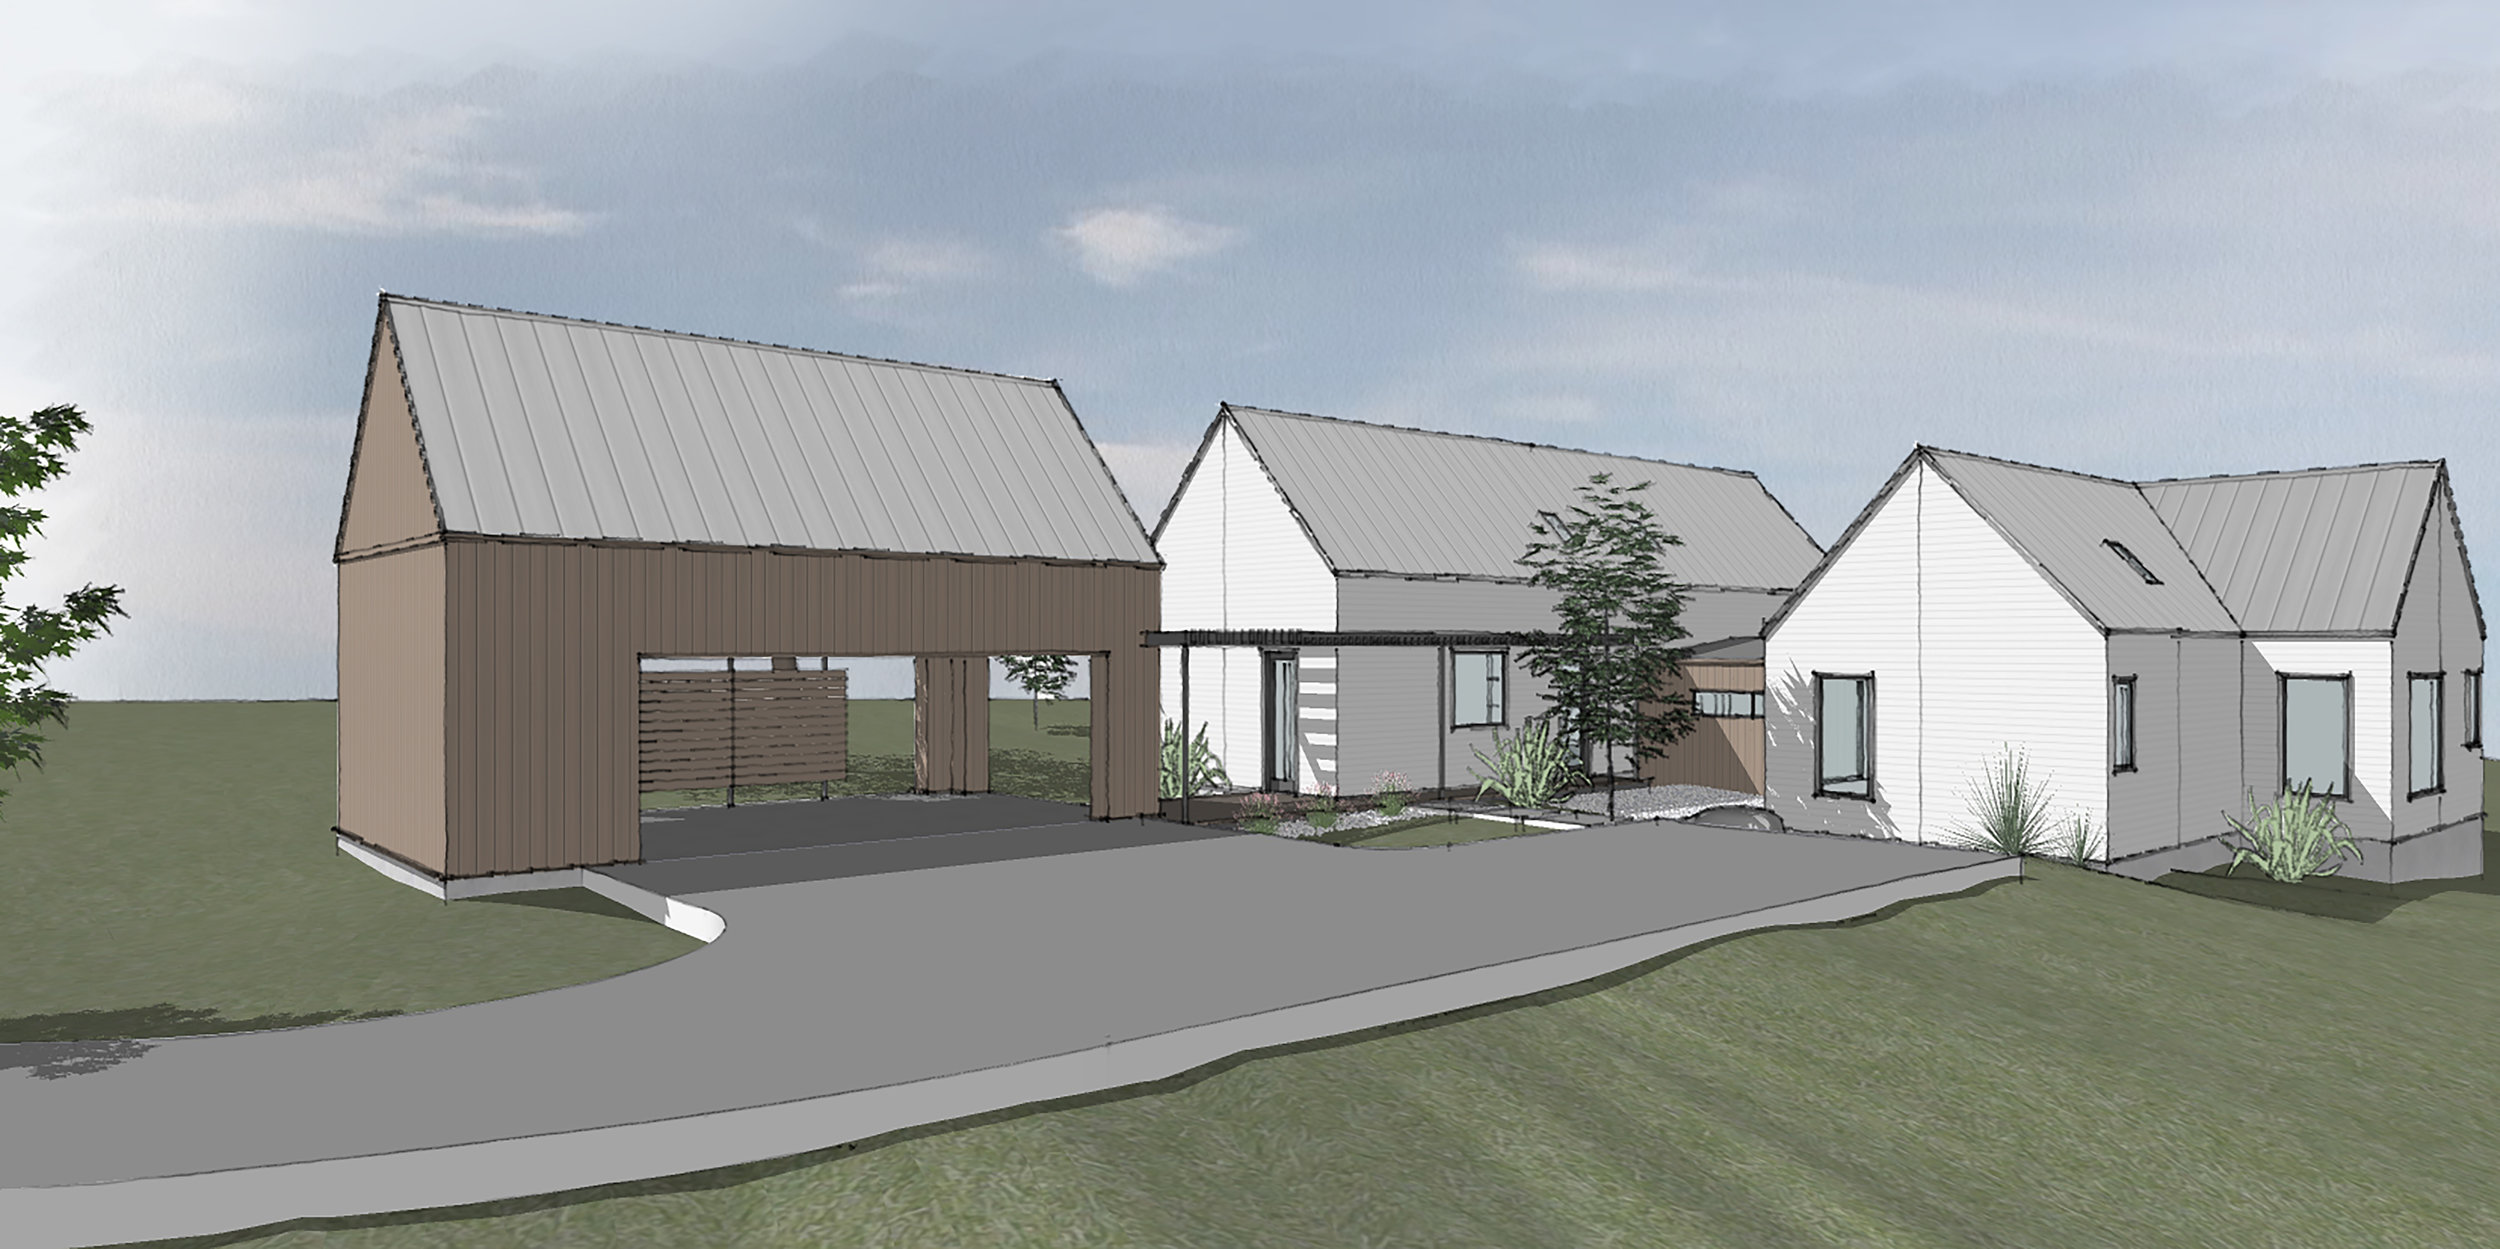 201 Terra Scena Trail - FOR SALE!Taking reservations now for this beautiful 4 bedroom, 3 bath Scandinavian modern home by Tim Brown Architecture.Construction starting Summer 2019 - reserve now and customize finishes and fixtures!